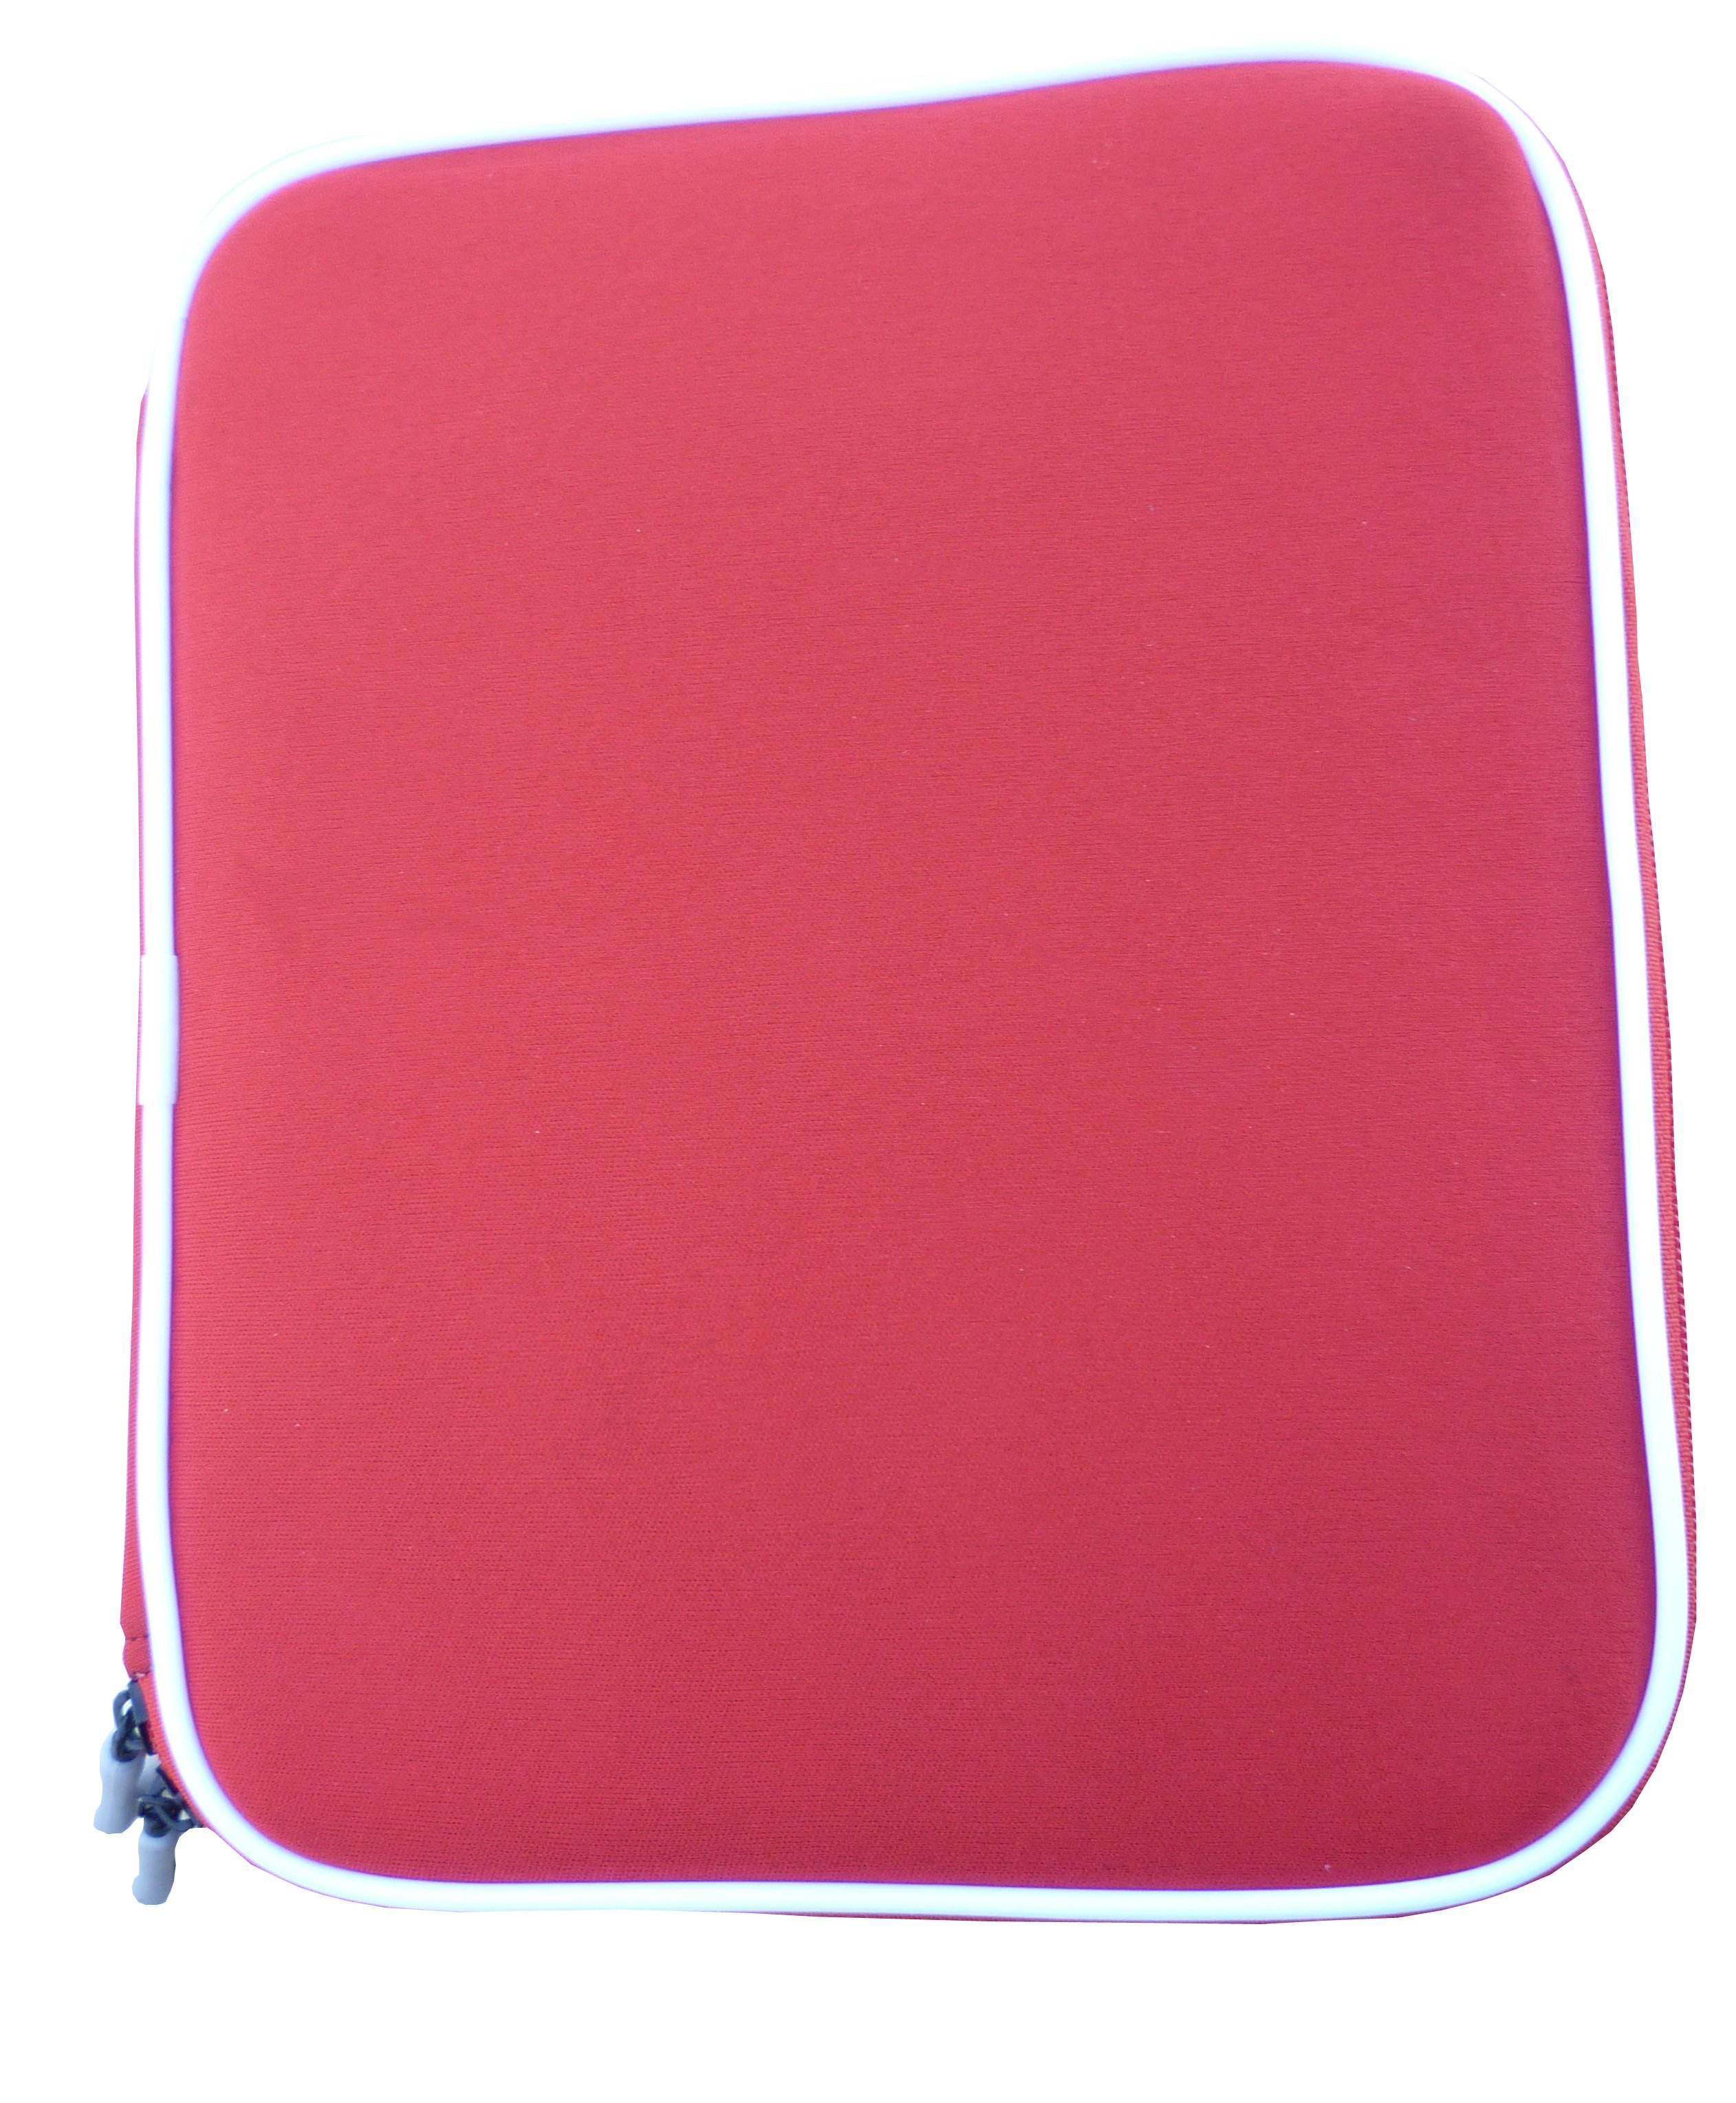 Offex Ipad Soft Form Fitting Portfolio Protective Carrying Case- Red Style Case With Zipper